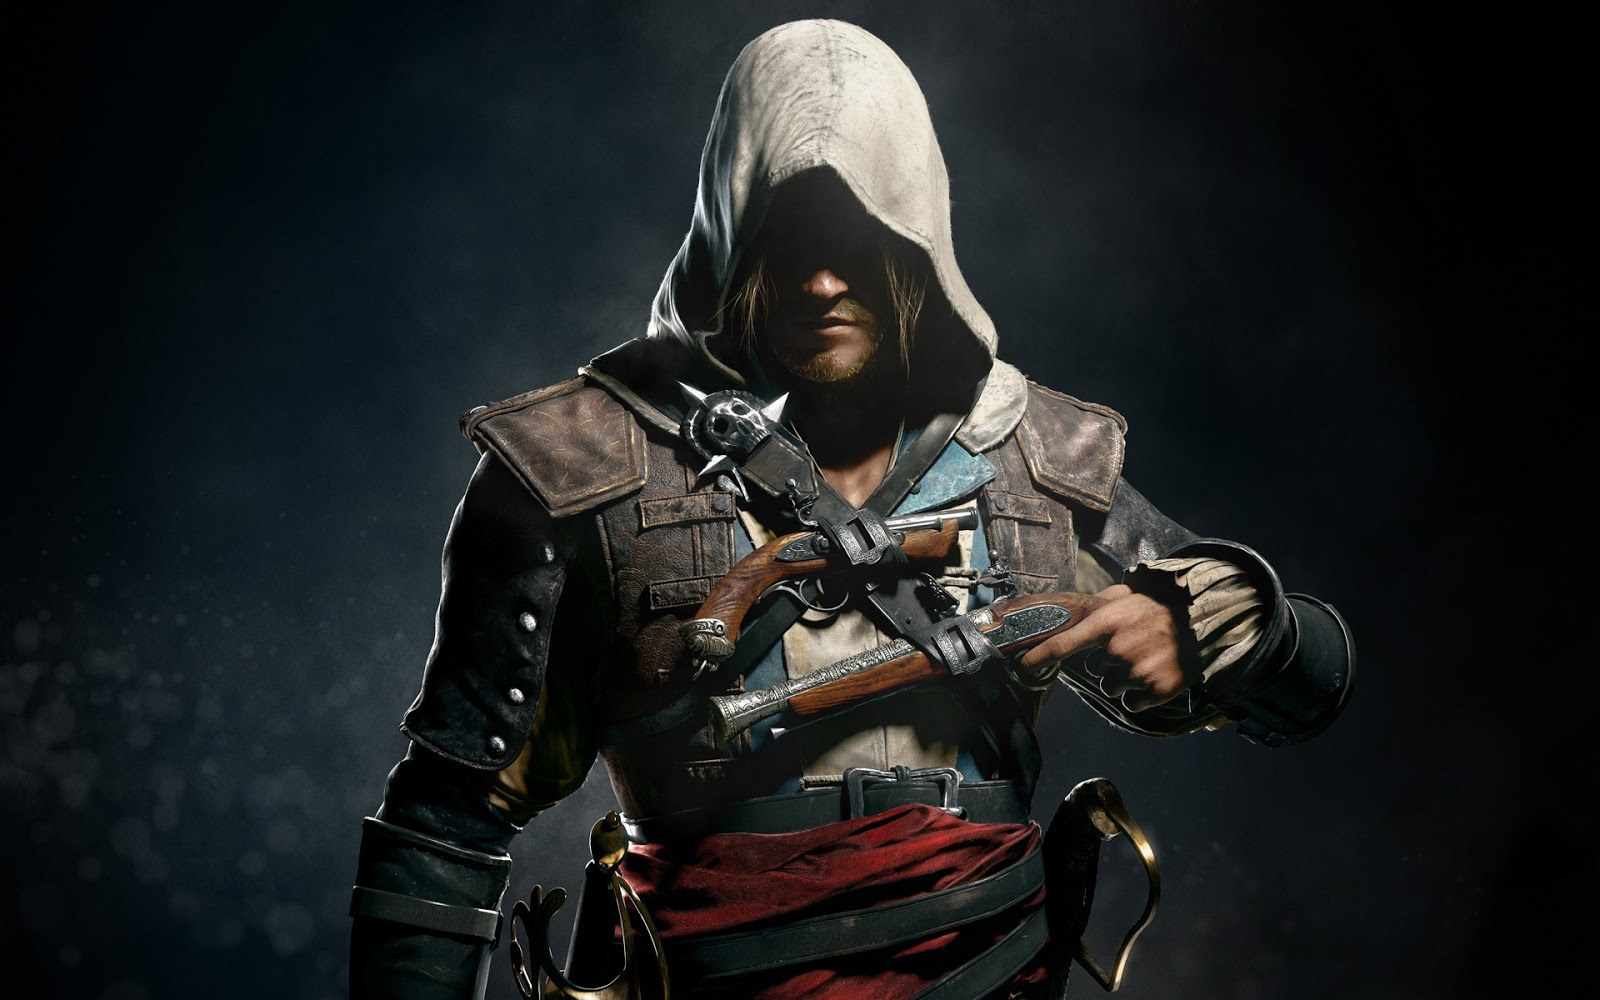 http://2.bp.blogspot.com/-FecPWPLGqyk/UTzV3Ygxa0I/AAAAAAAANEQ/oZQOnO5GTkA/s1600/assassins_creed_iv-wallpapers_hd+(5).jpg